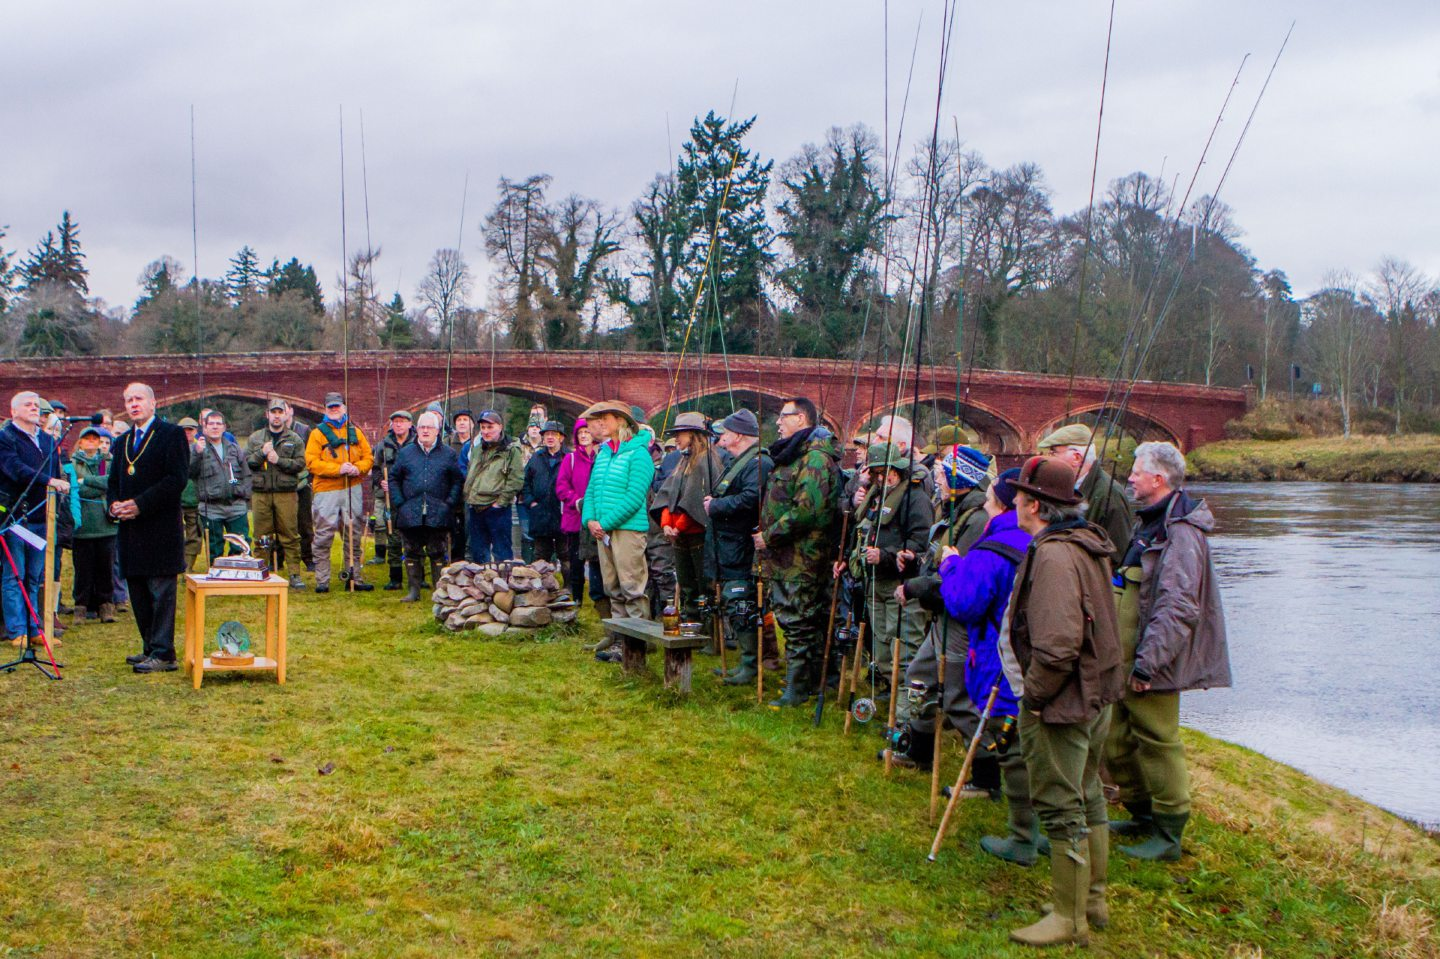 Opening of the River Tay Salmon fishing season at Meikleour Fishing, Kinclaven Bridge, by Meikleour in 2018